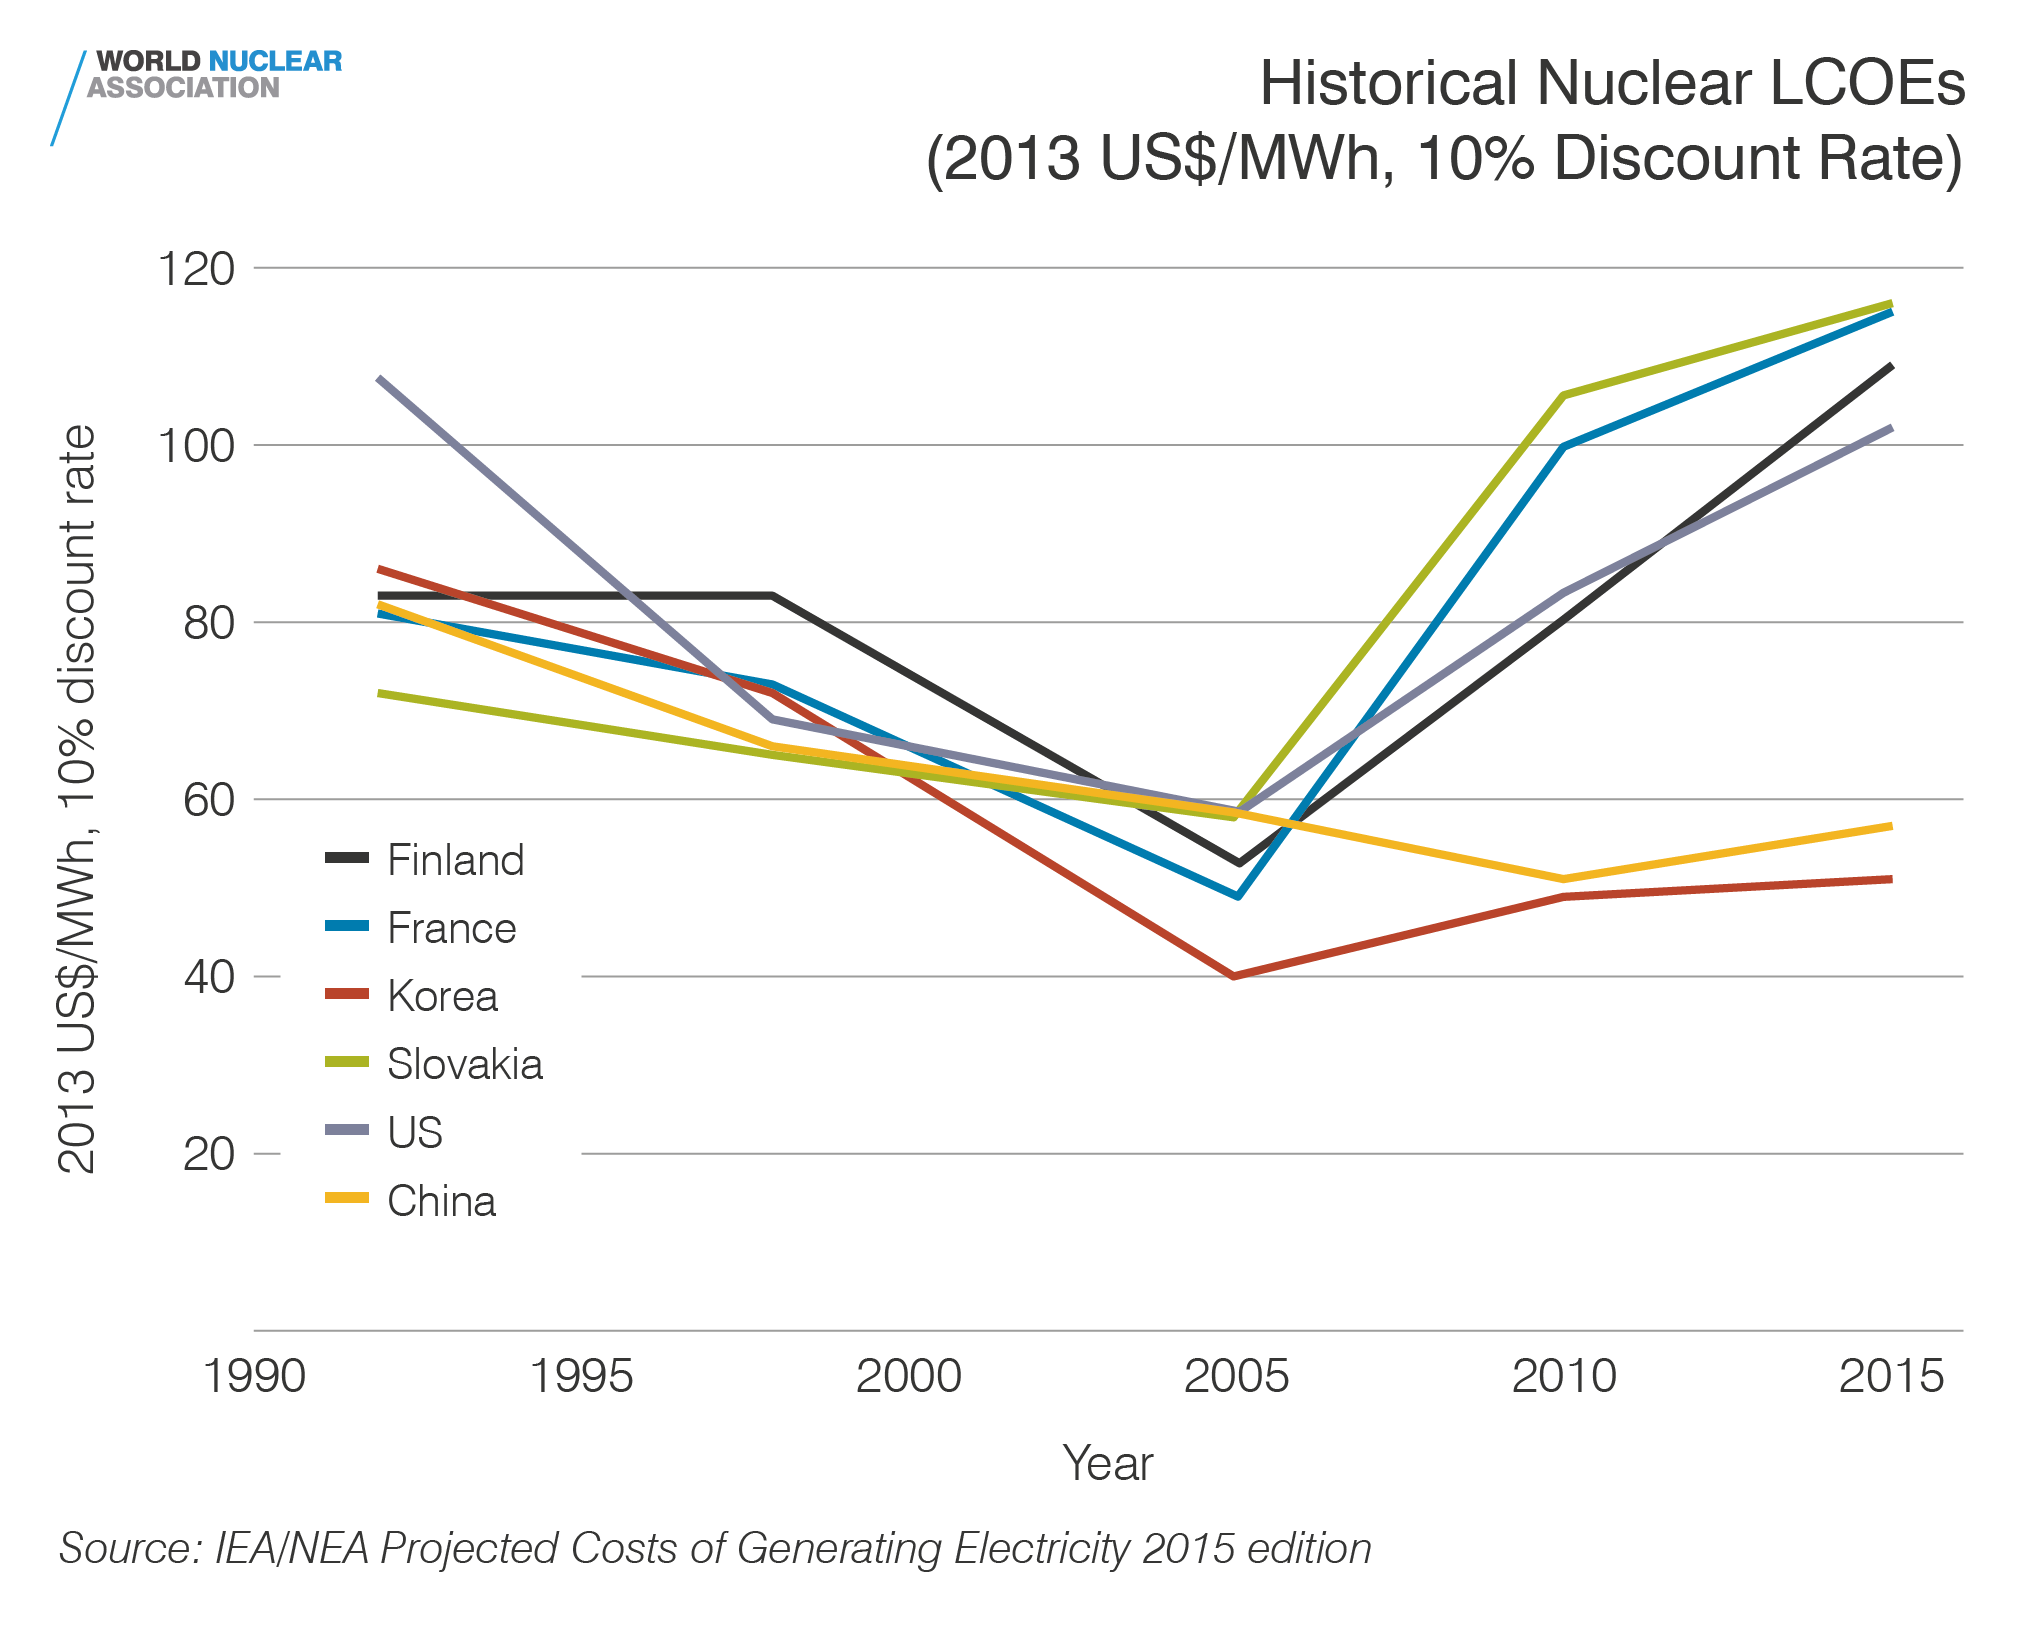 Historical Nuclear LCOEs (2013US$/MWh, 10% discount rate)